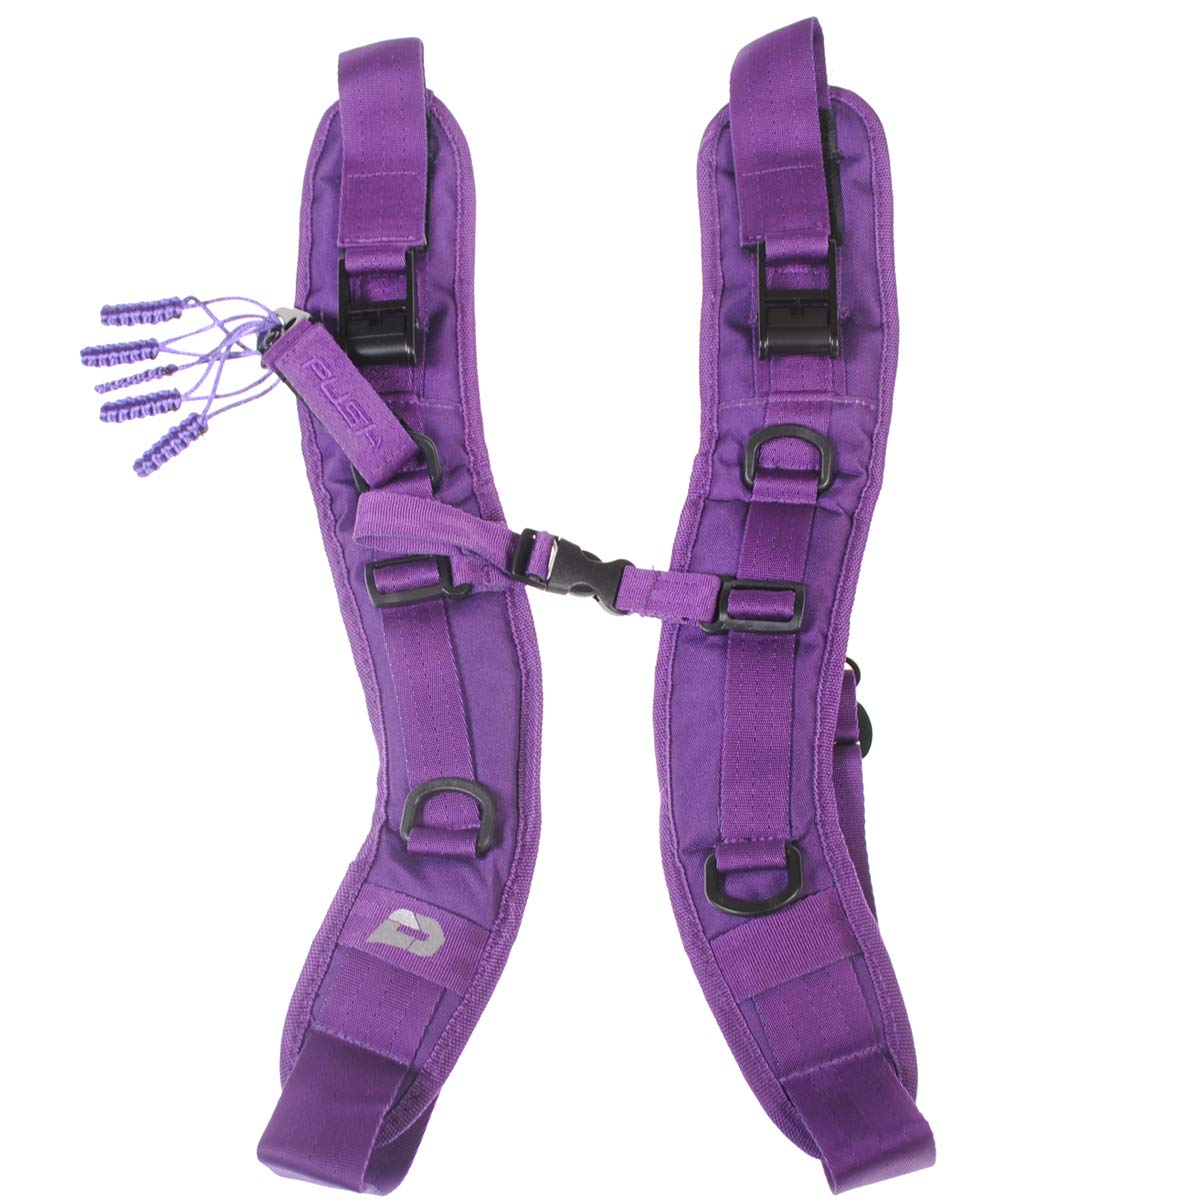 PUSH Paintball Backpack and Div1 Gear Bag Strap Kit (Purple)